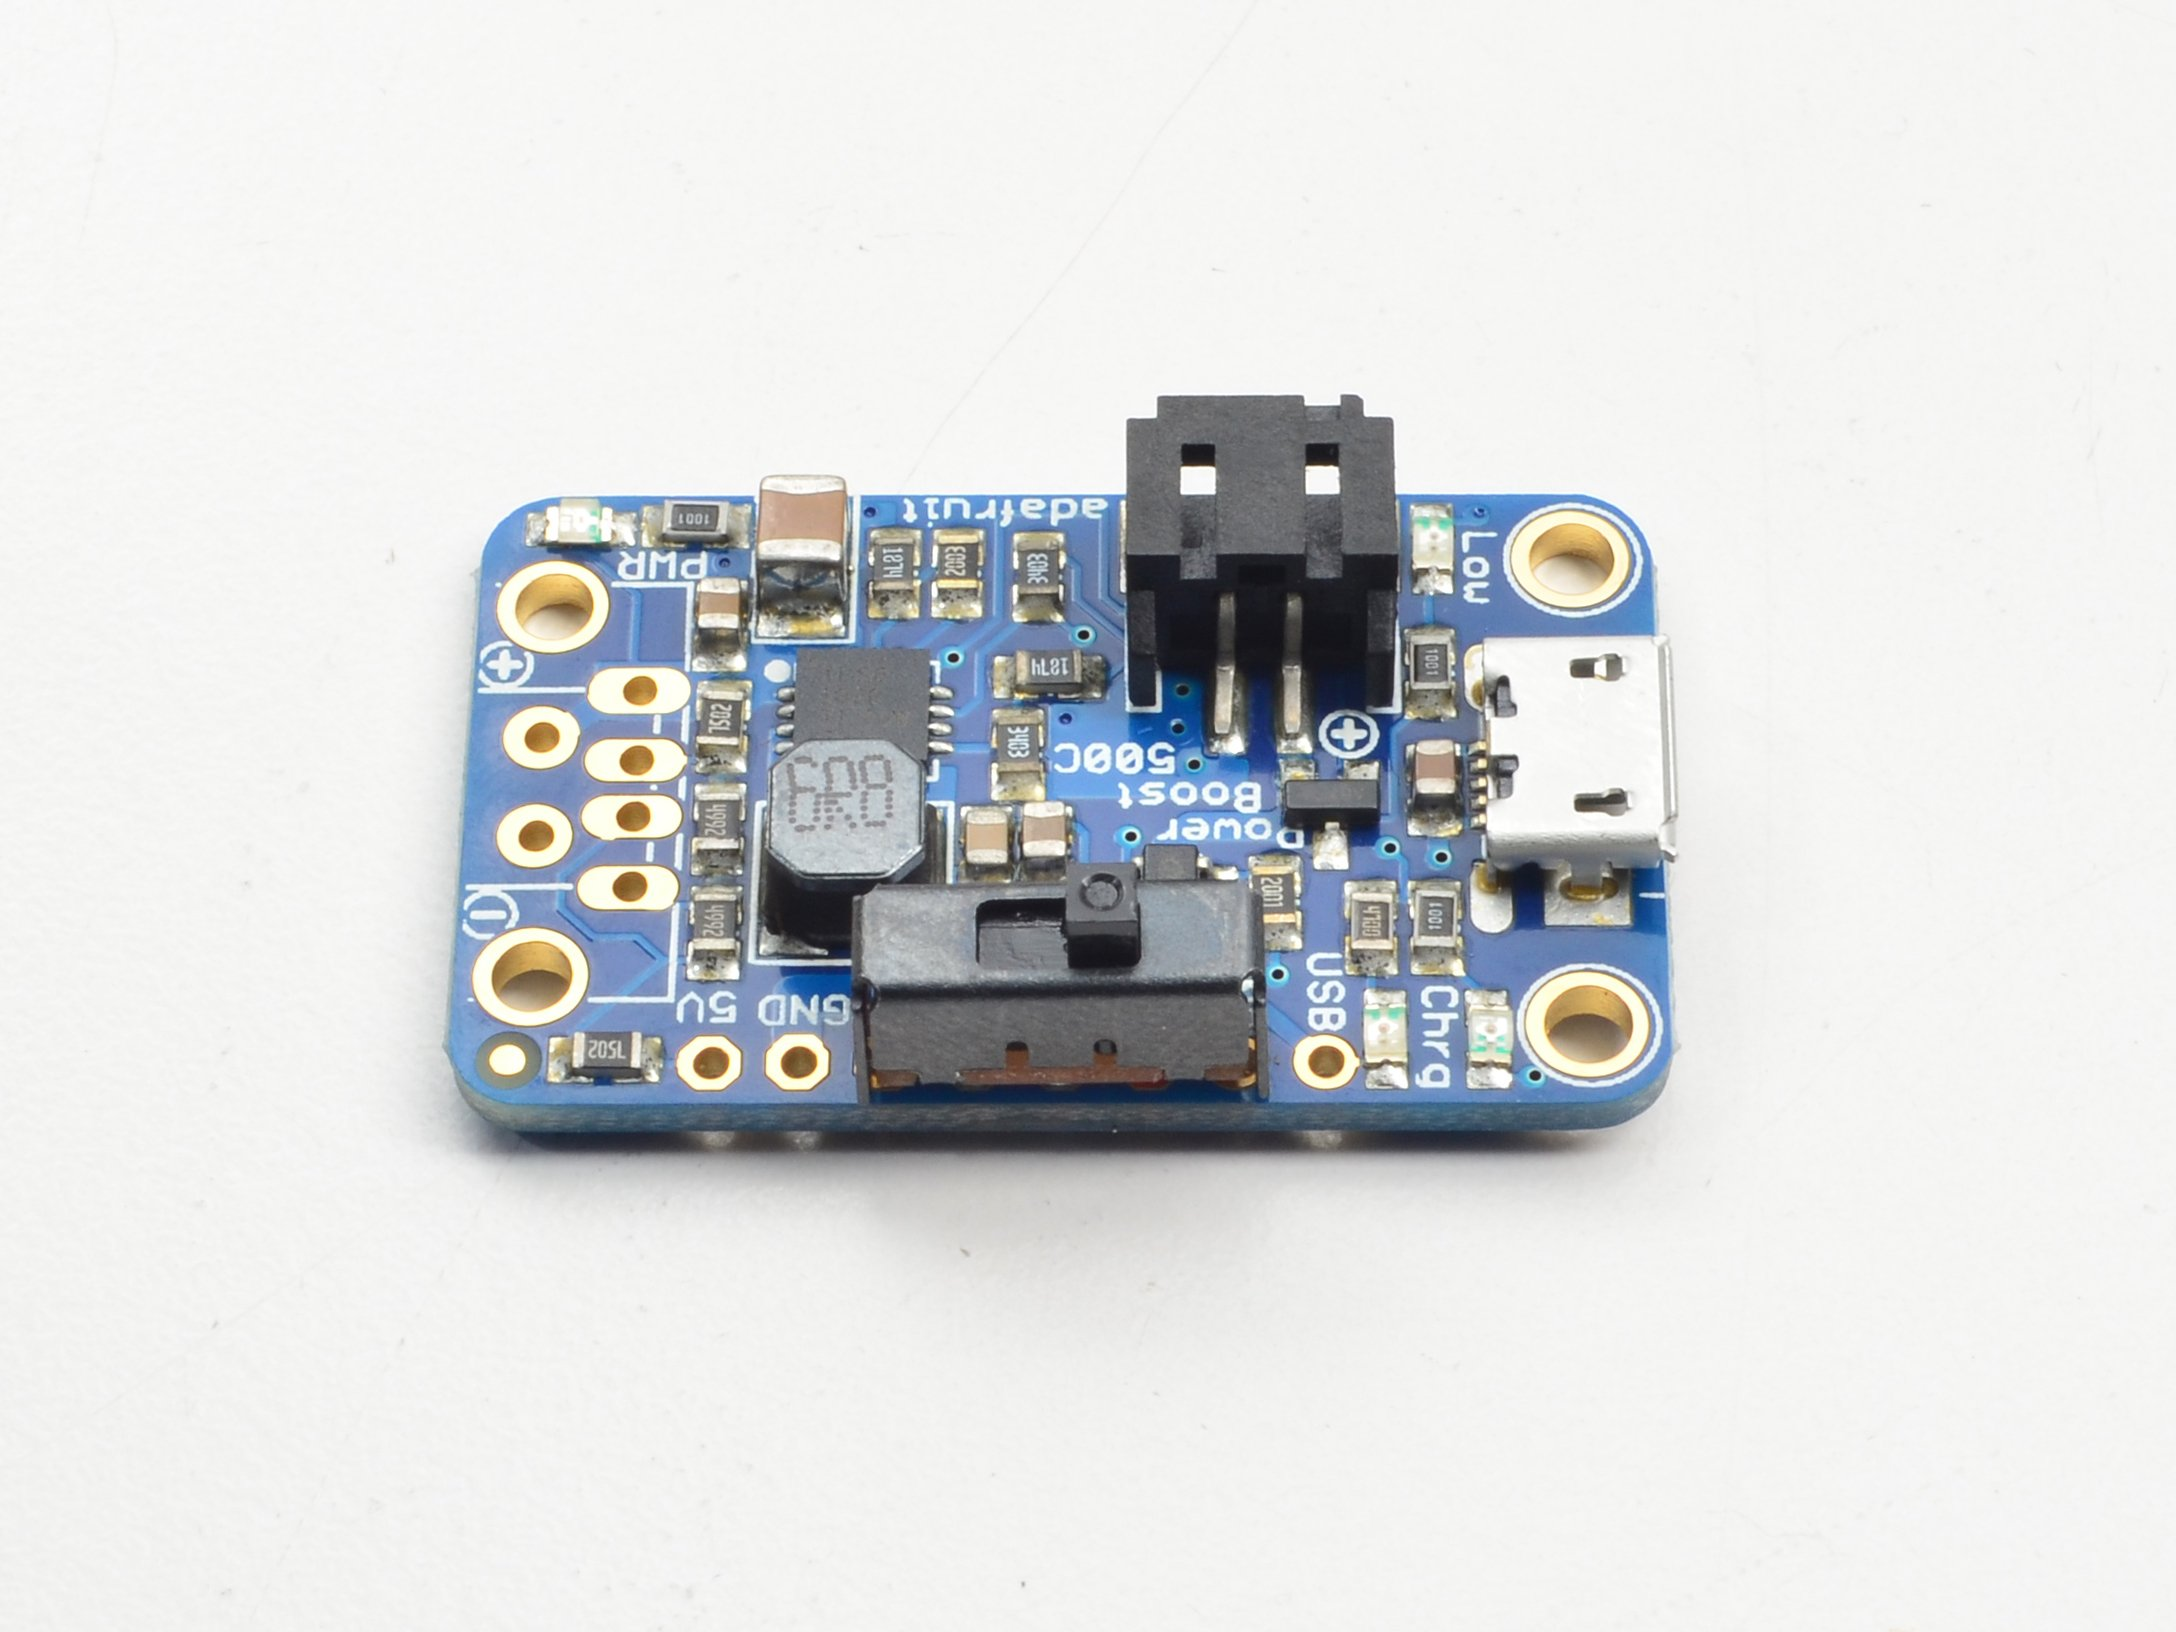 adafruit_products_10.jpg